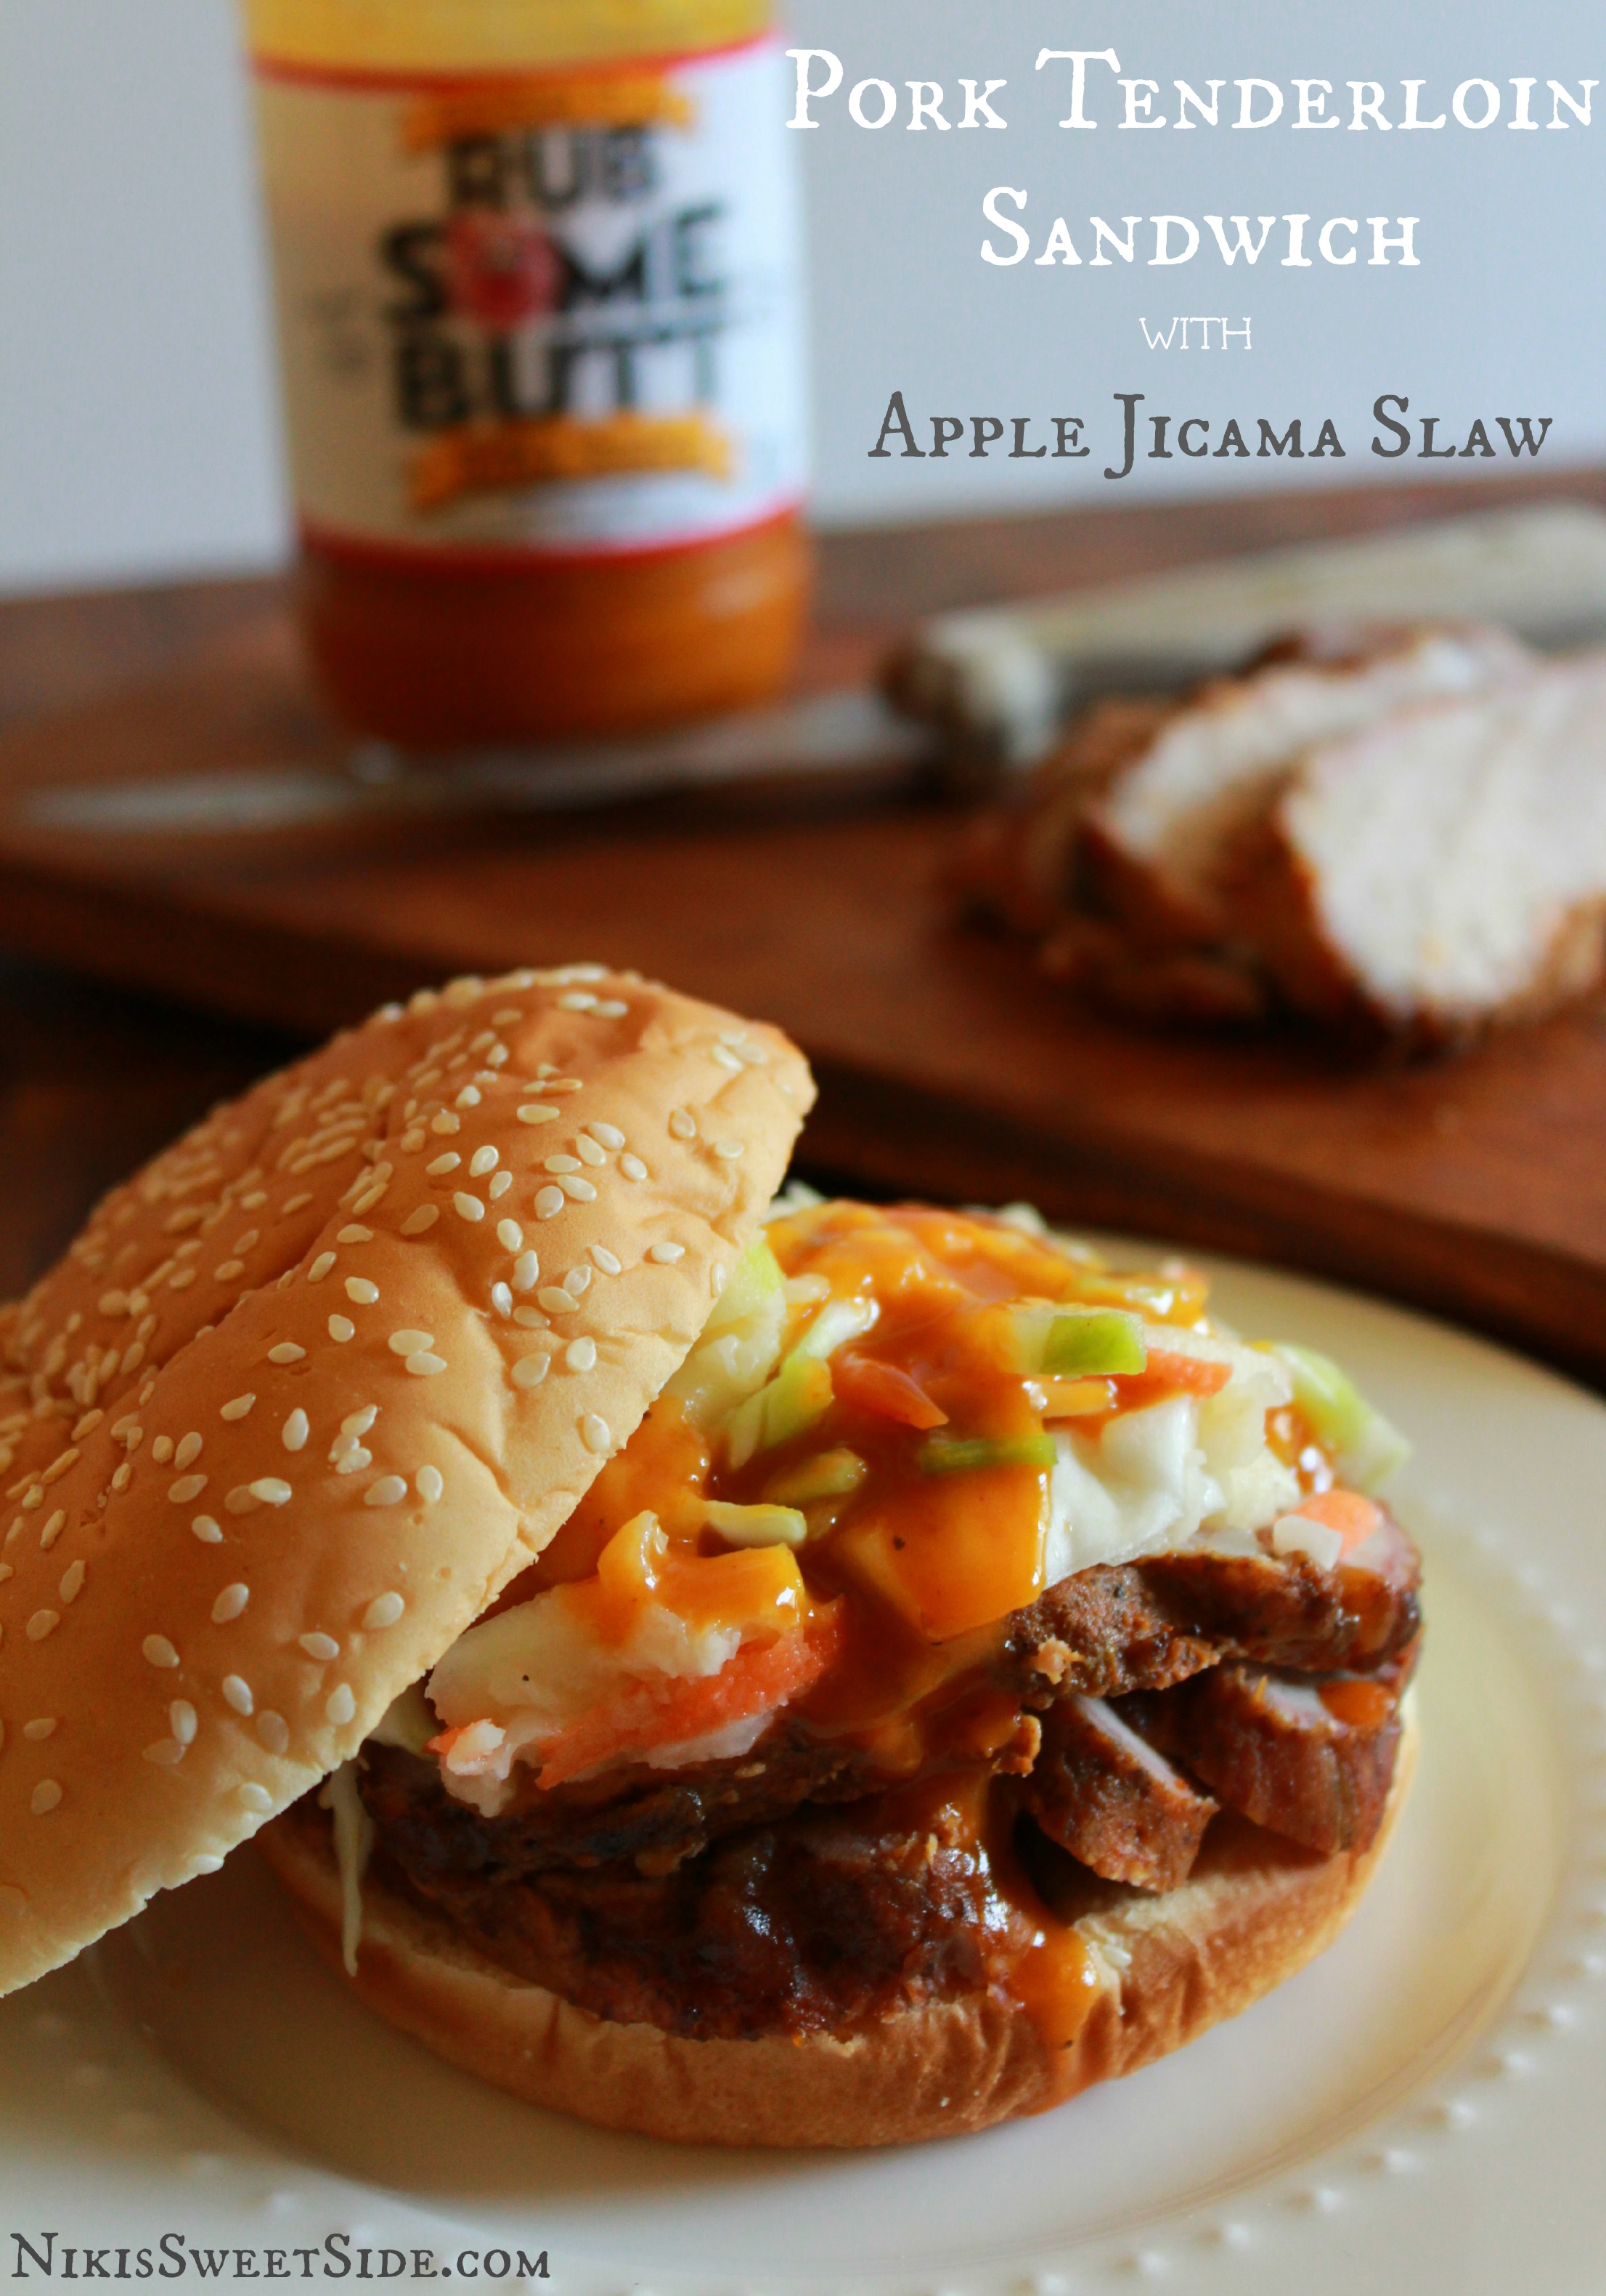 Pork Tenderloin Sandwiches with Apple Jicama Slaw